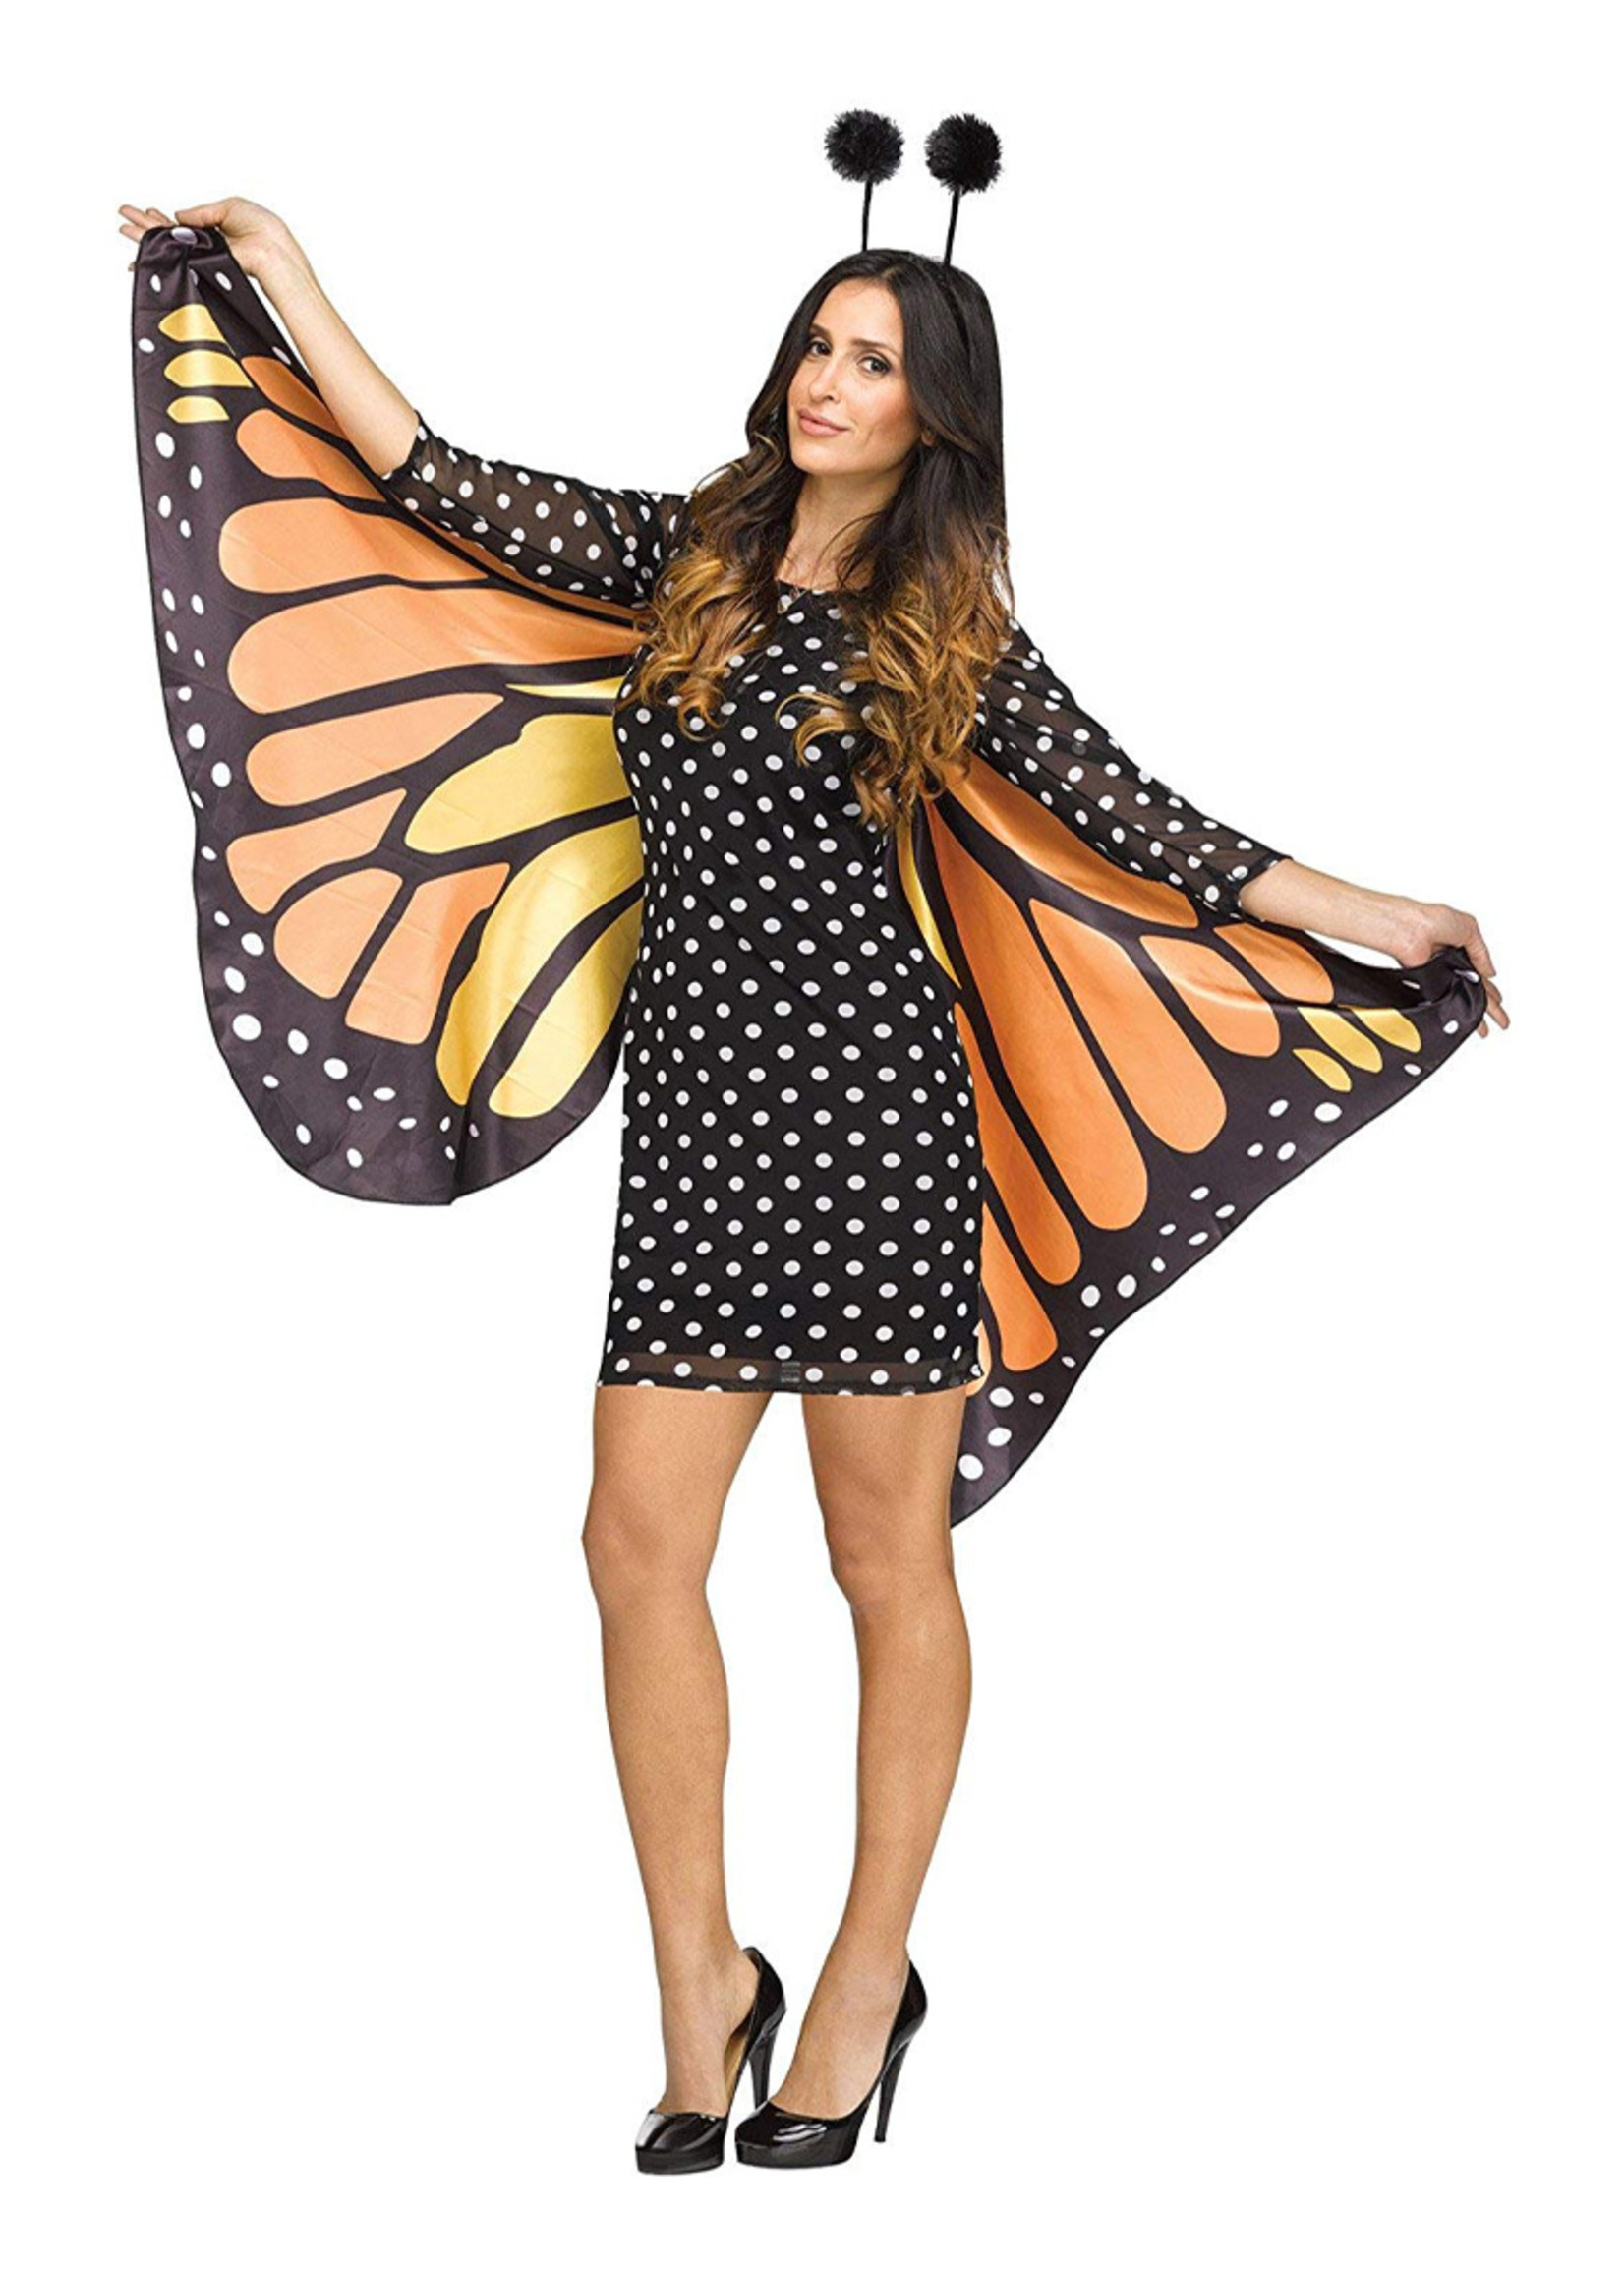 FUN WORLD Fluttery Butterfly Costume - Women's